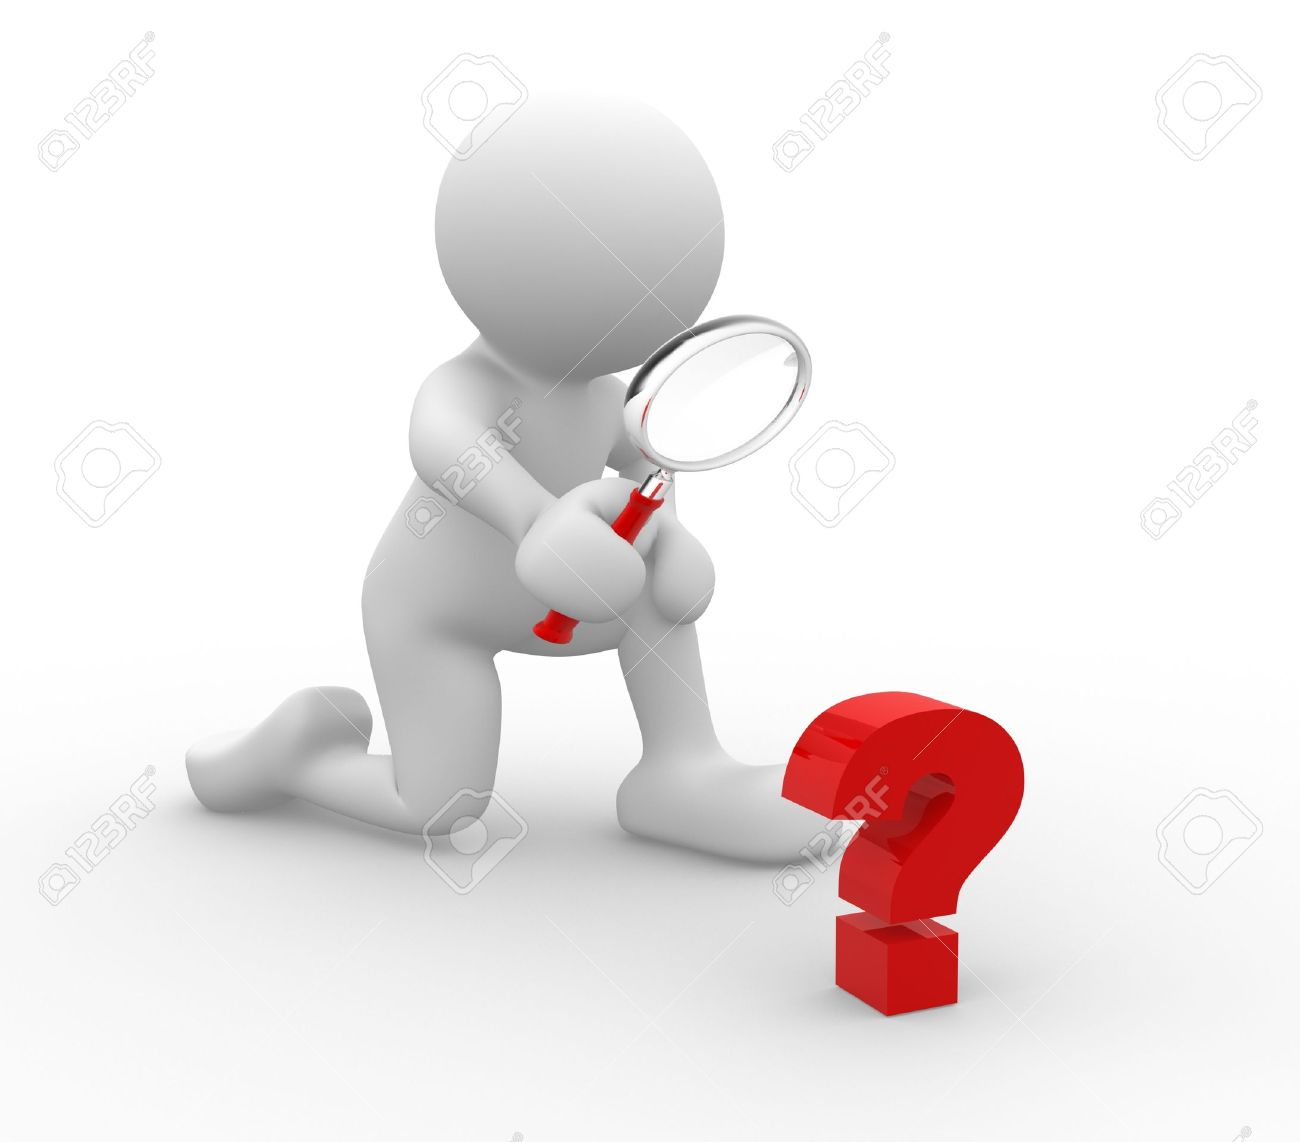 3d person with magnifying glass and question mark stock images image - 3d People Human Character Person With Magnifying Glass Question Mark Red Search 3d